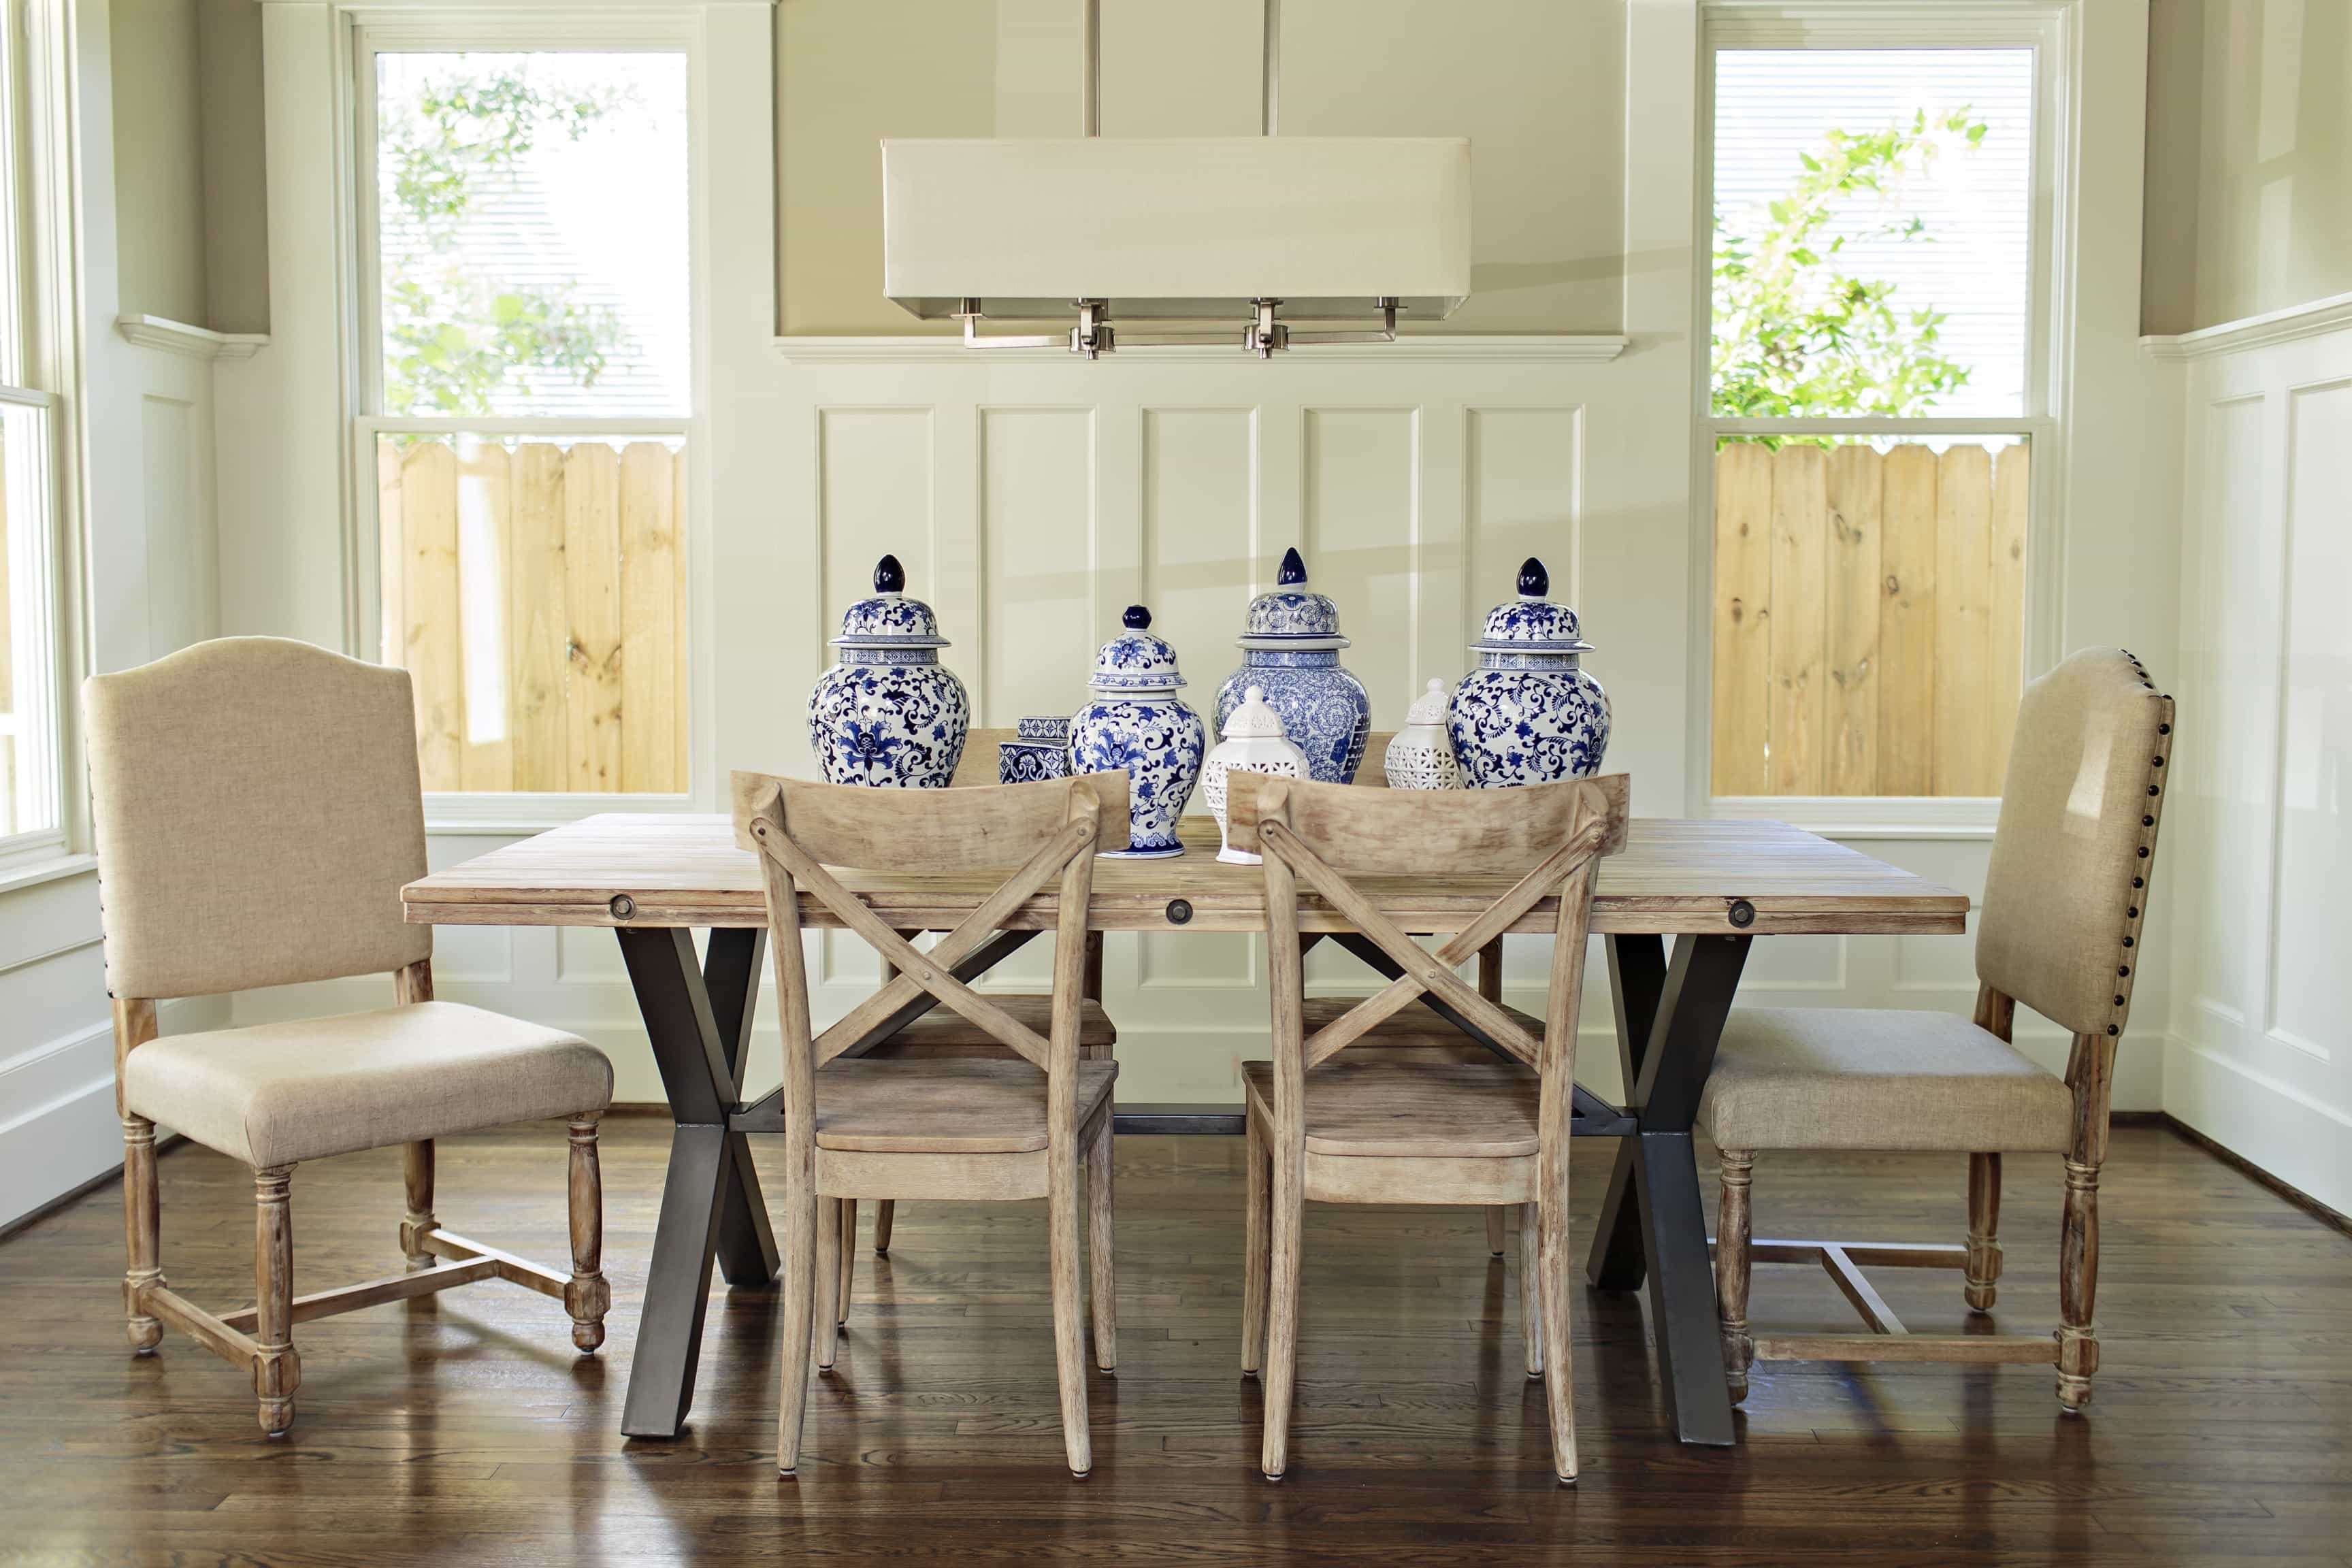 Featured Image of French Country Wood Furnishings For Rustic Dining Room